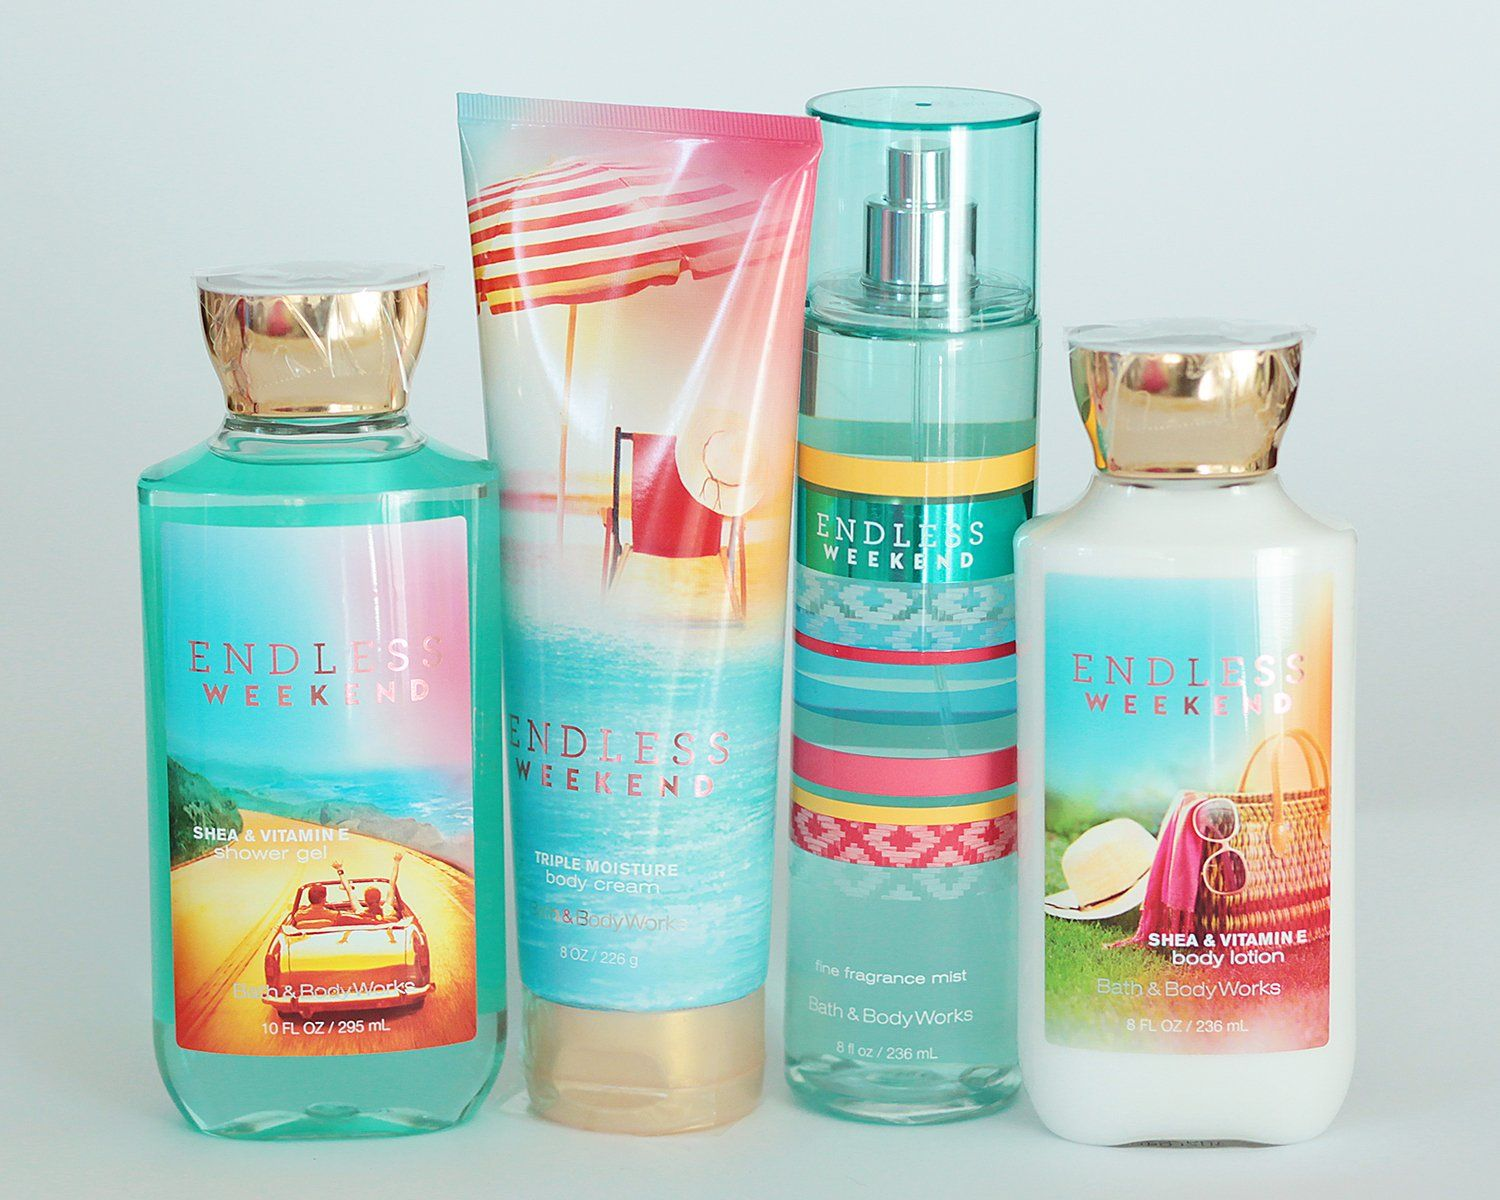 Amazon com   Bath and Body Works Endless Weekend Gift Set of Shower Gel. Amazon com   Bath and Body Works Endless Weekend Gift Set of